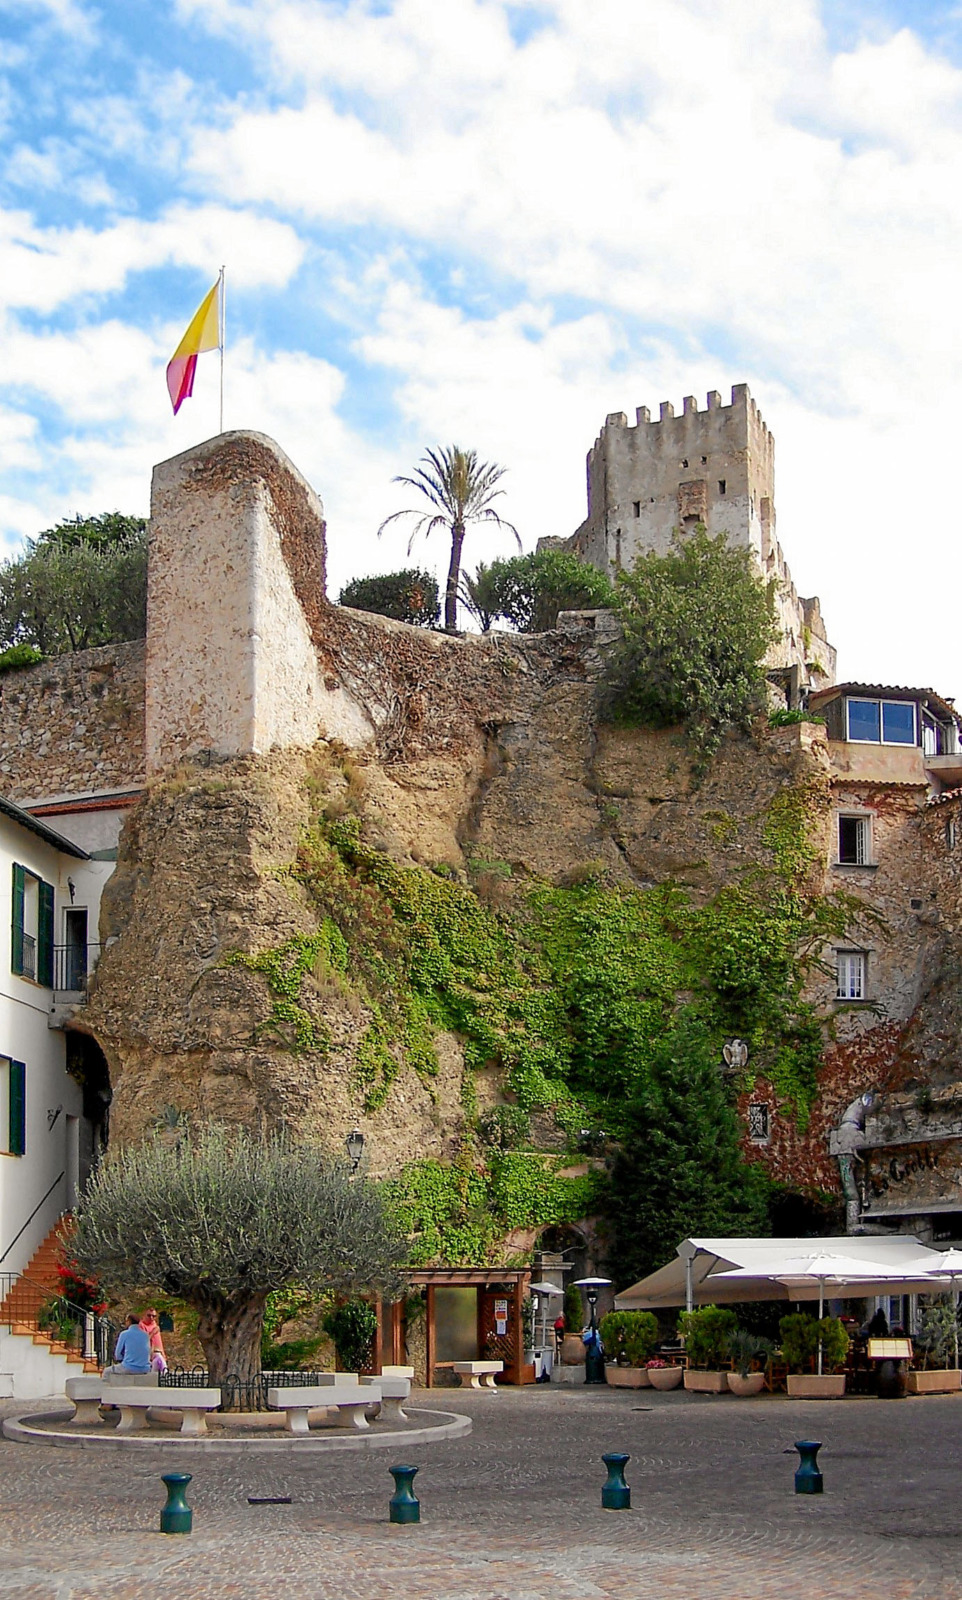 Roquebrune-Cap-Martin - Place des Deux Frères and Castle © Unknown Author - licence [CC BY-SA 3.0] from Wikimedia Commons